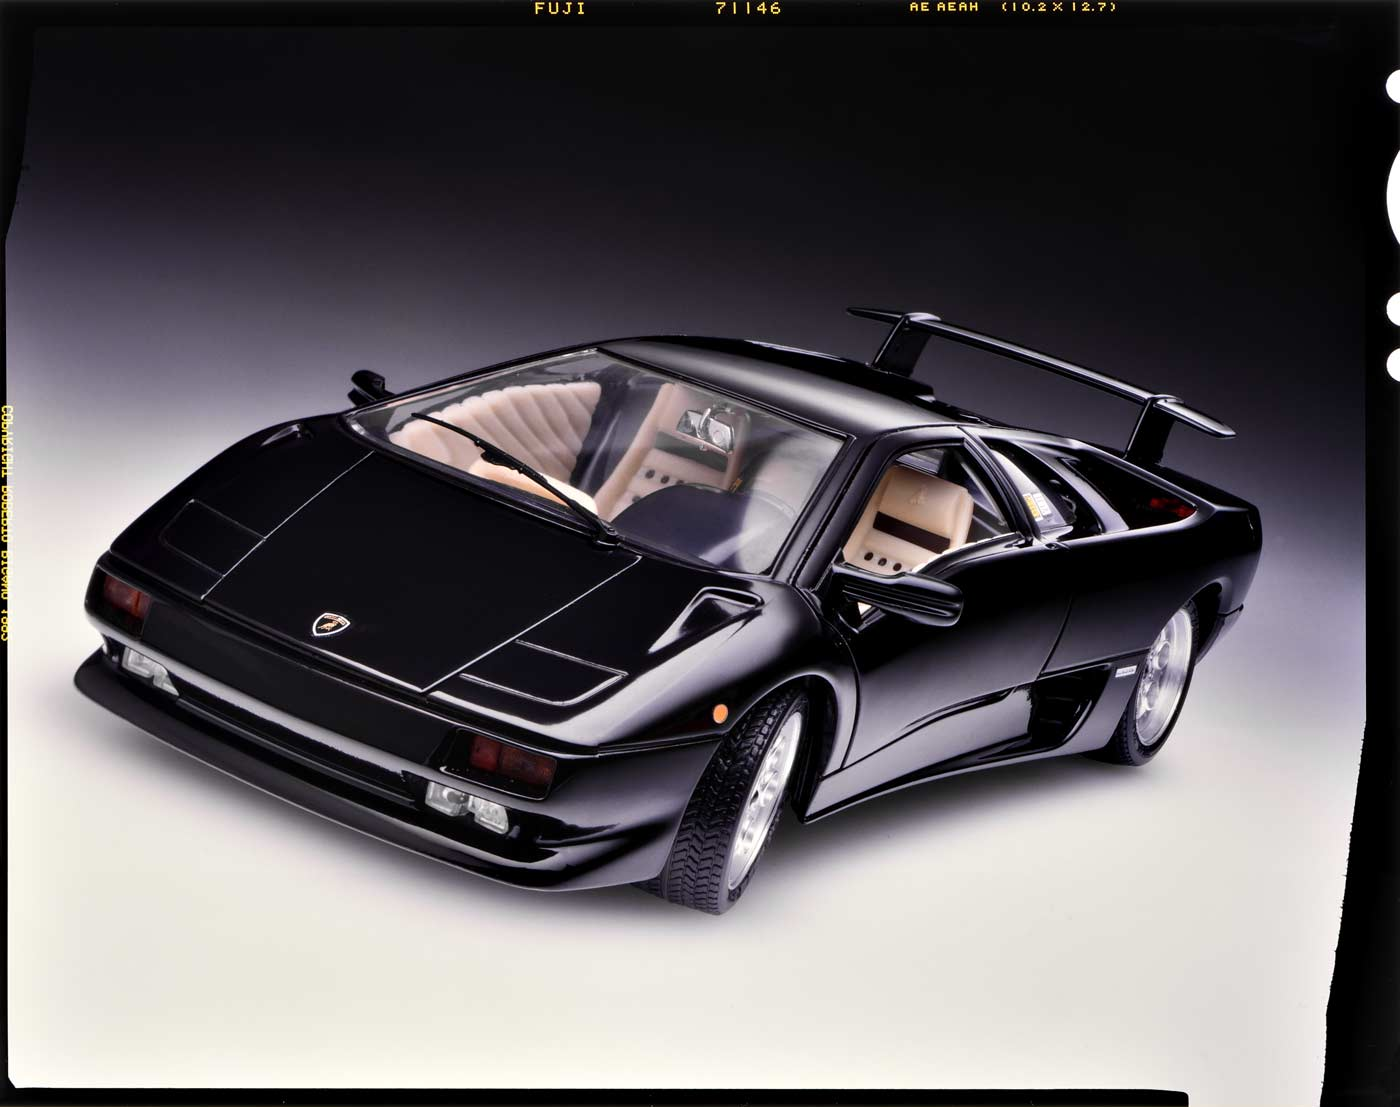 001008 Bburago Lamborghini Countach for Assembly Kit